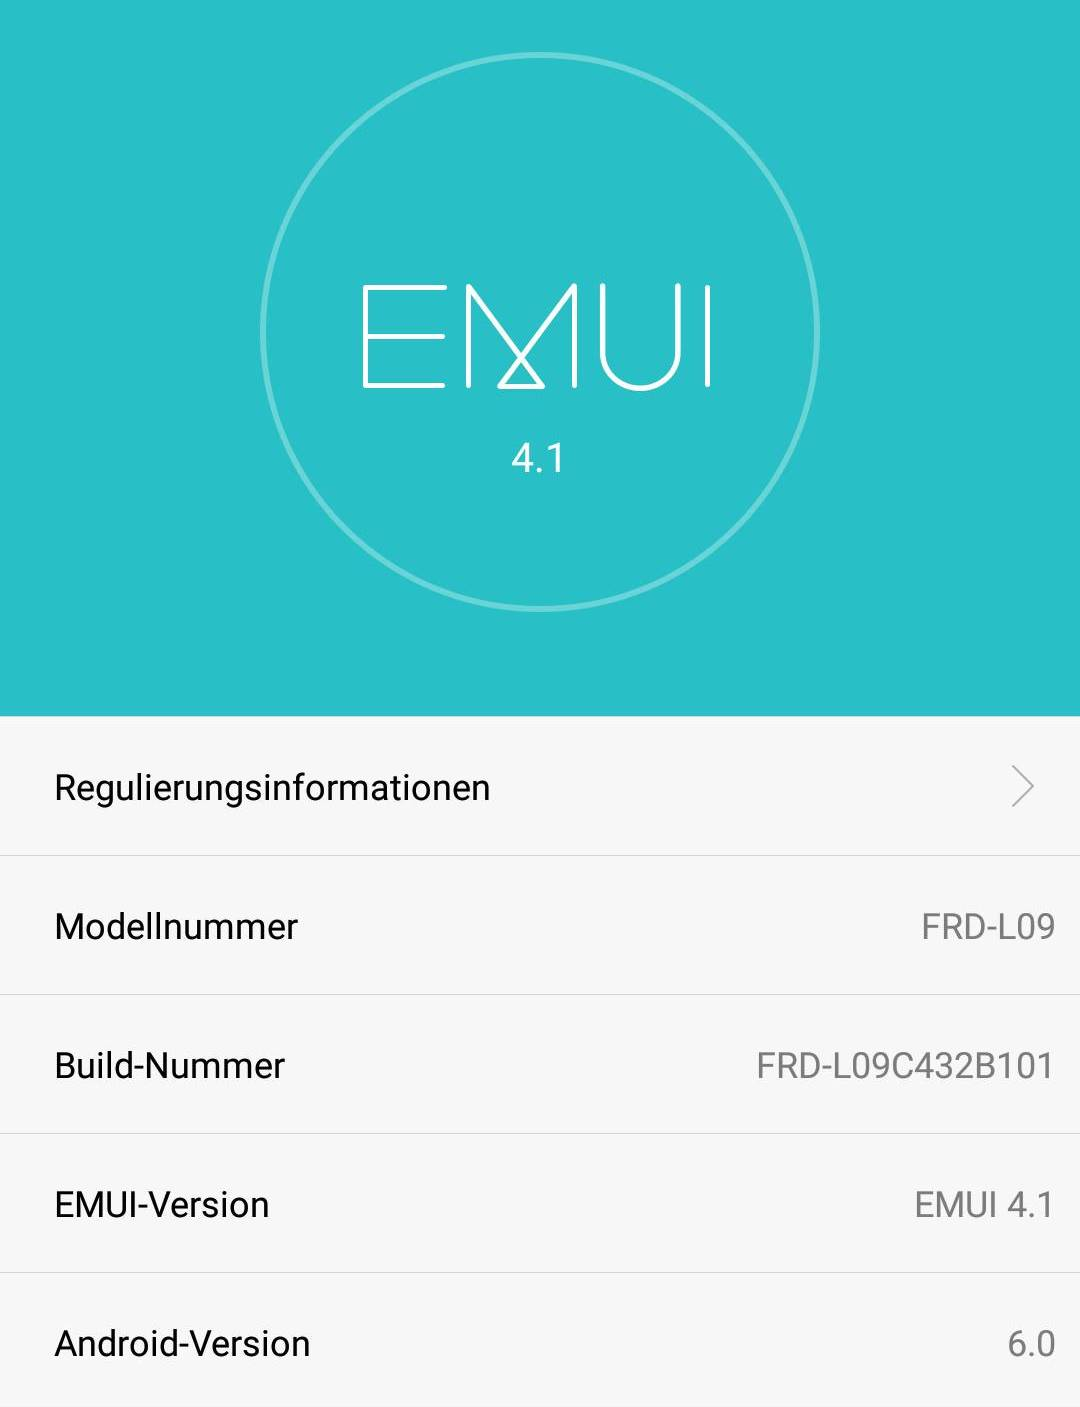 honor8-android-6-0-emui-4-1